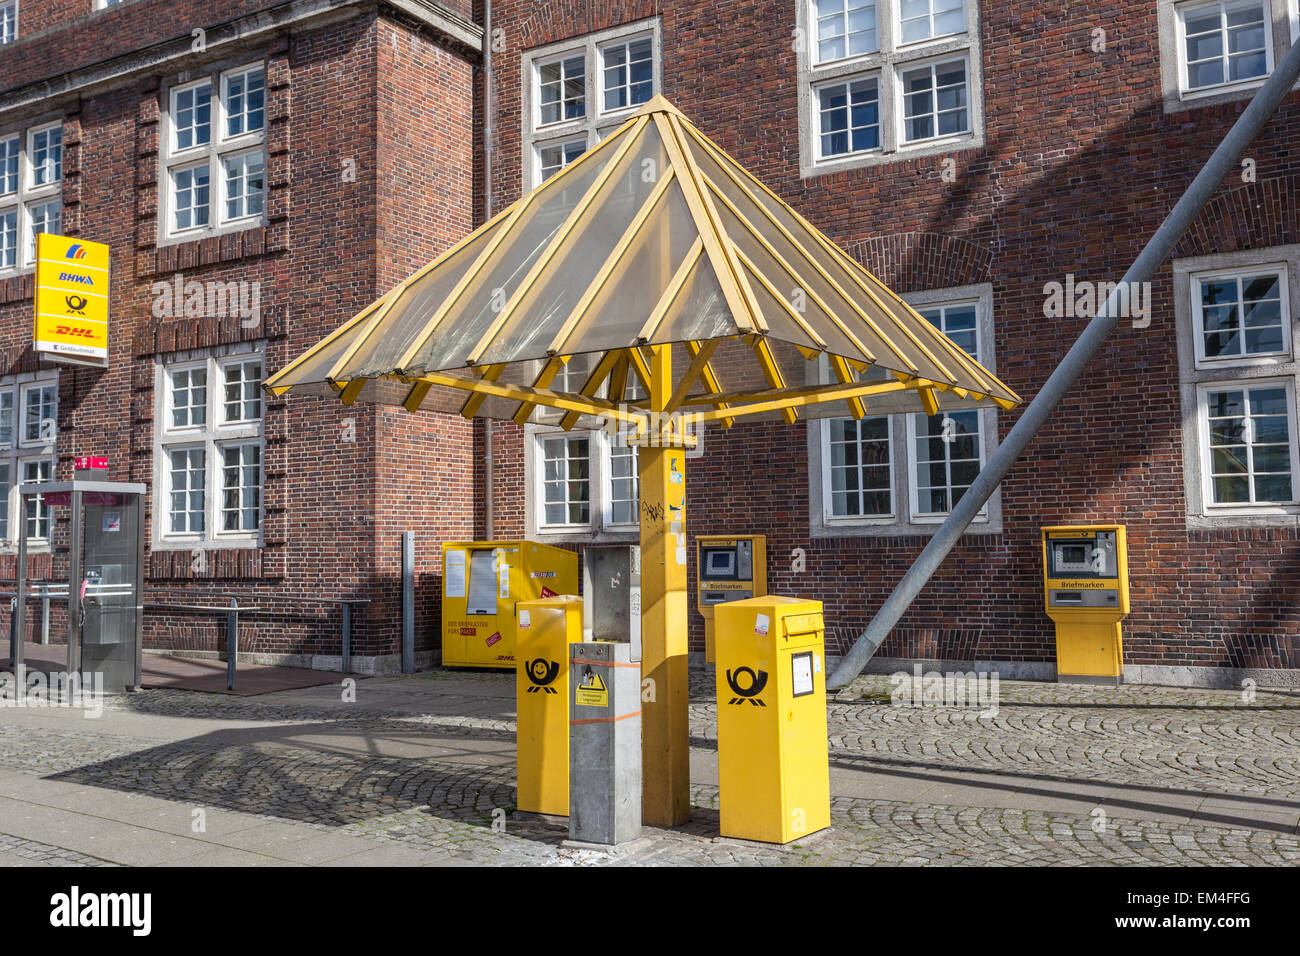 Yellow Mailboxes from the German Postal Service in the city of Bremen, Germany Stock Photo